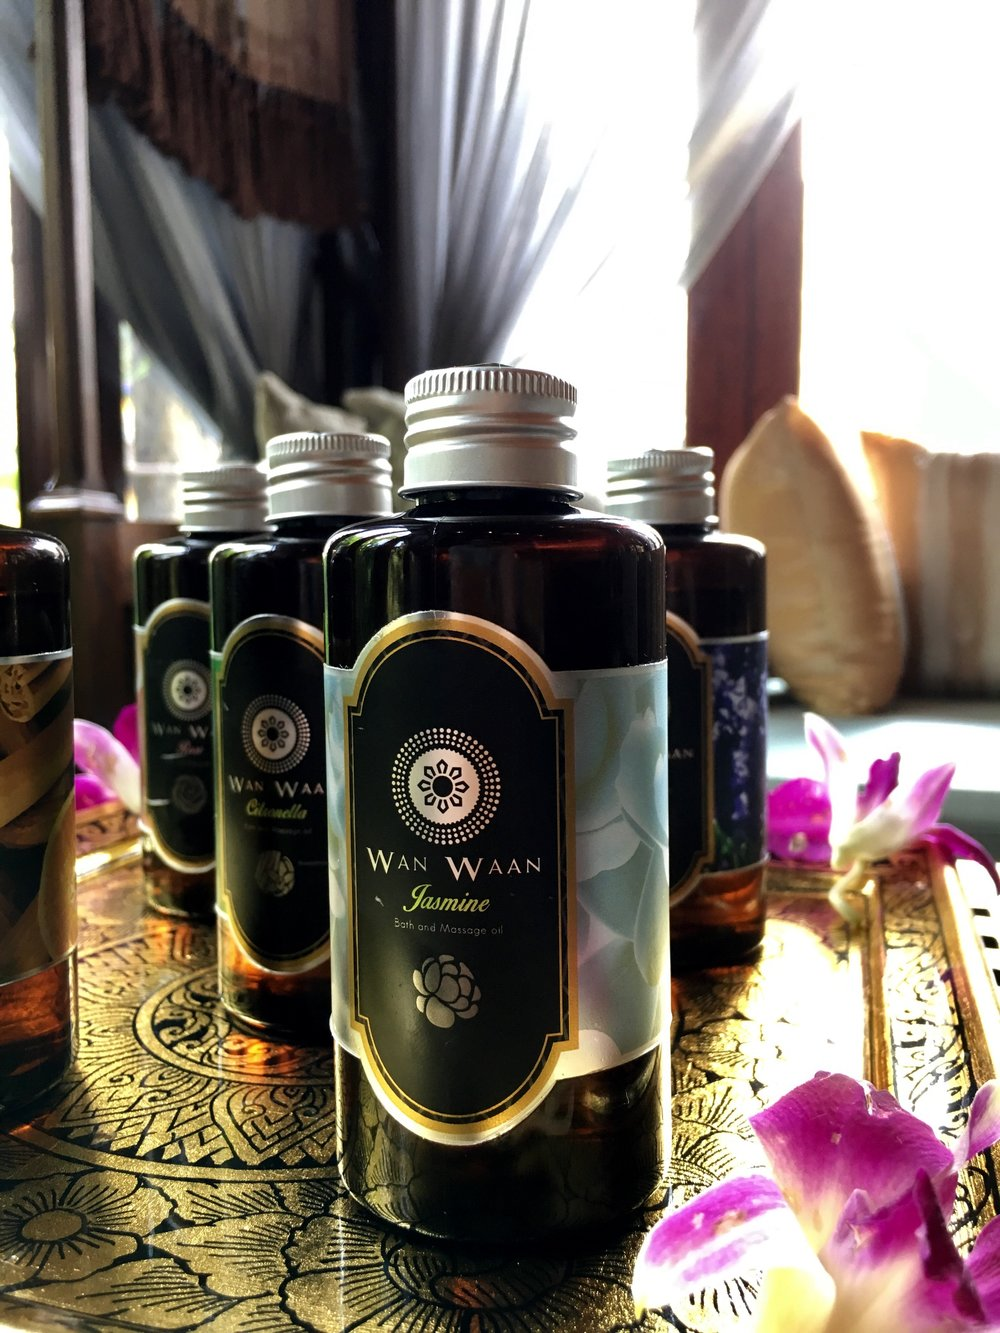 The Wan Waan essential oil-based products the spa uses are available for purchase